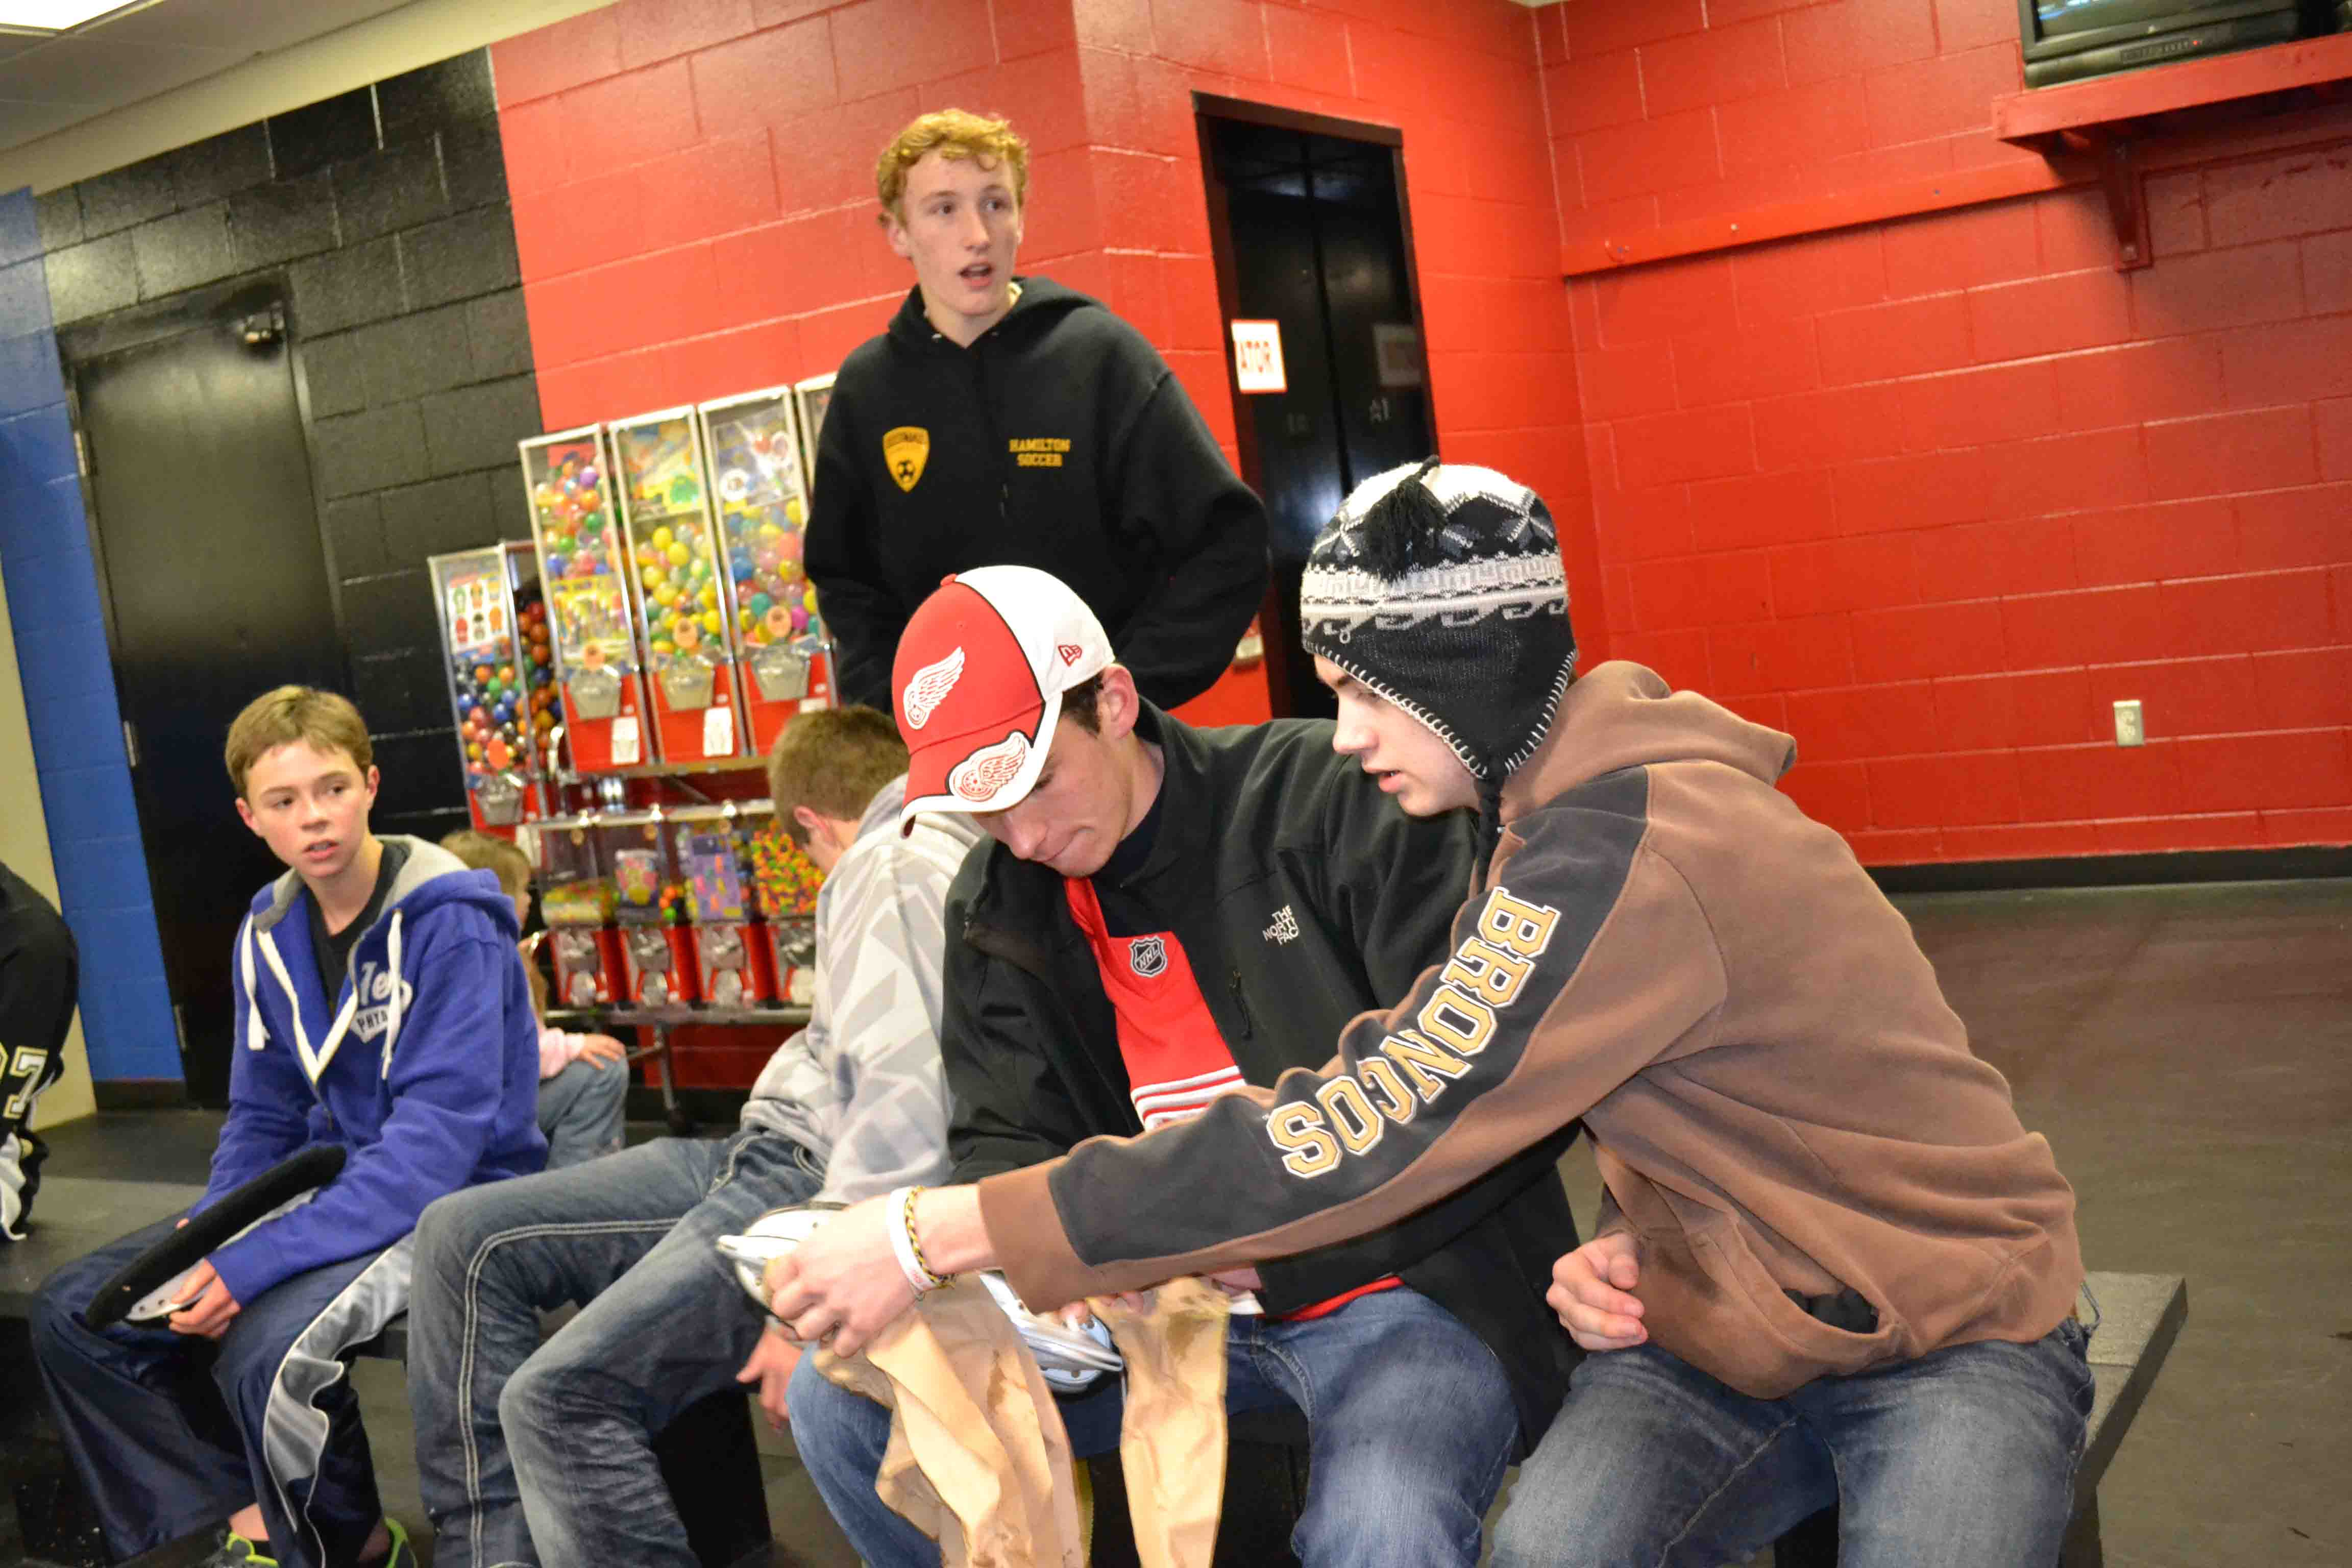 Brent shows Brett how to clean his skate blades, while Luke and Blake have a seat.